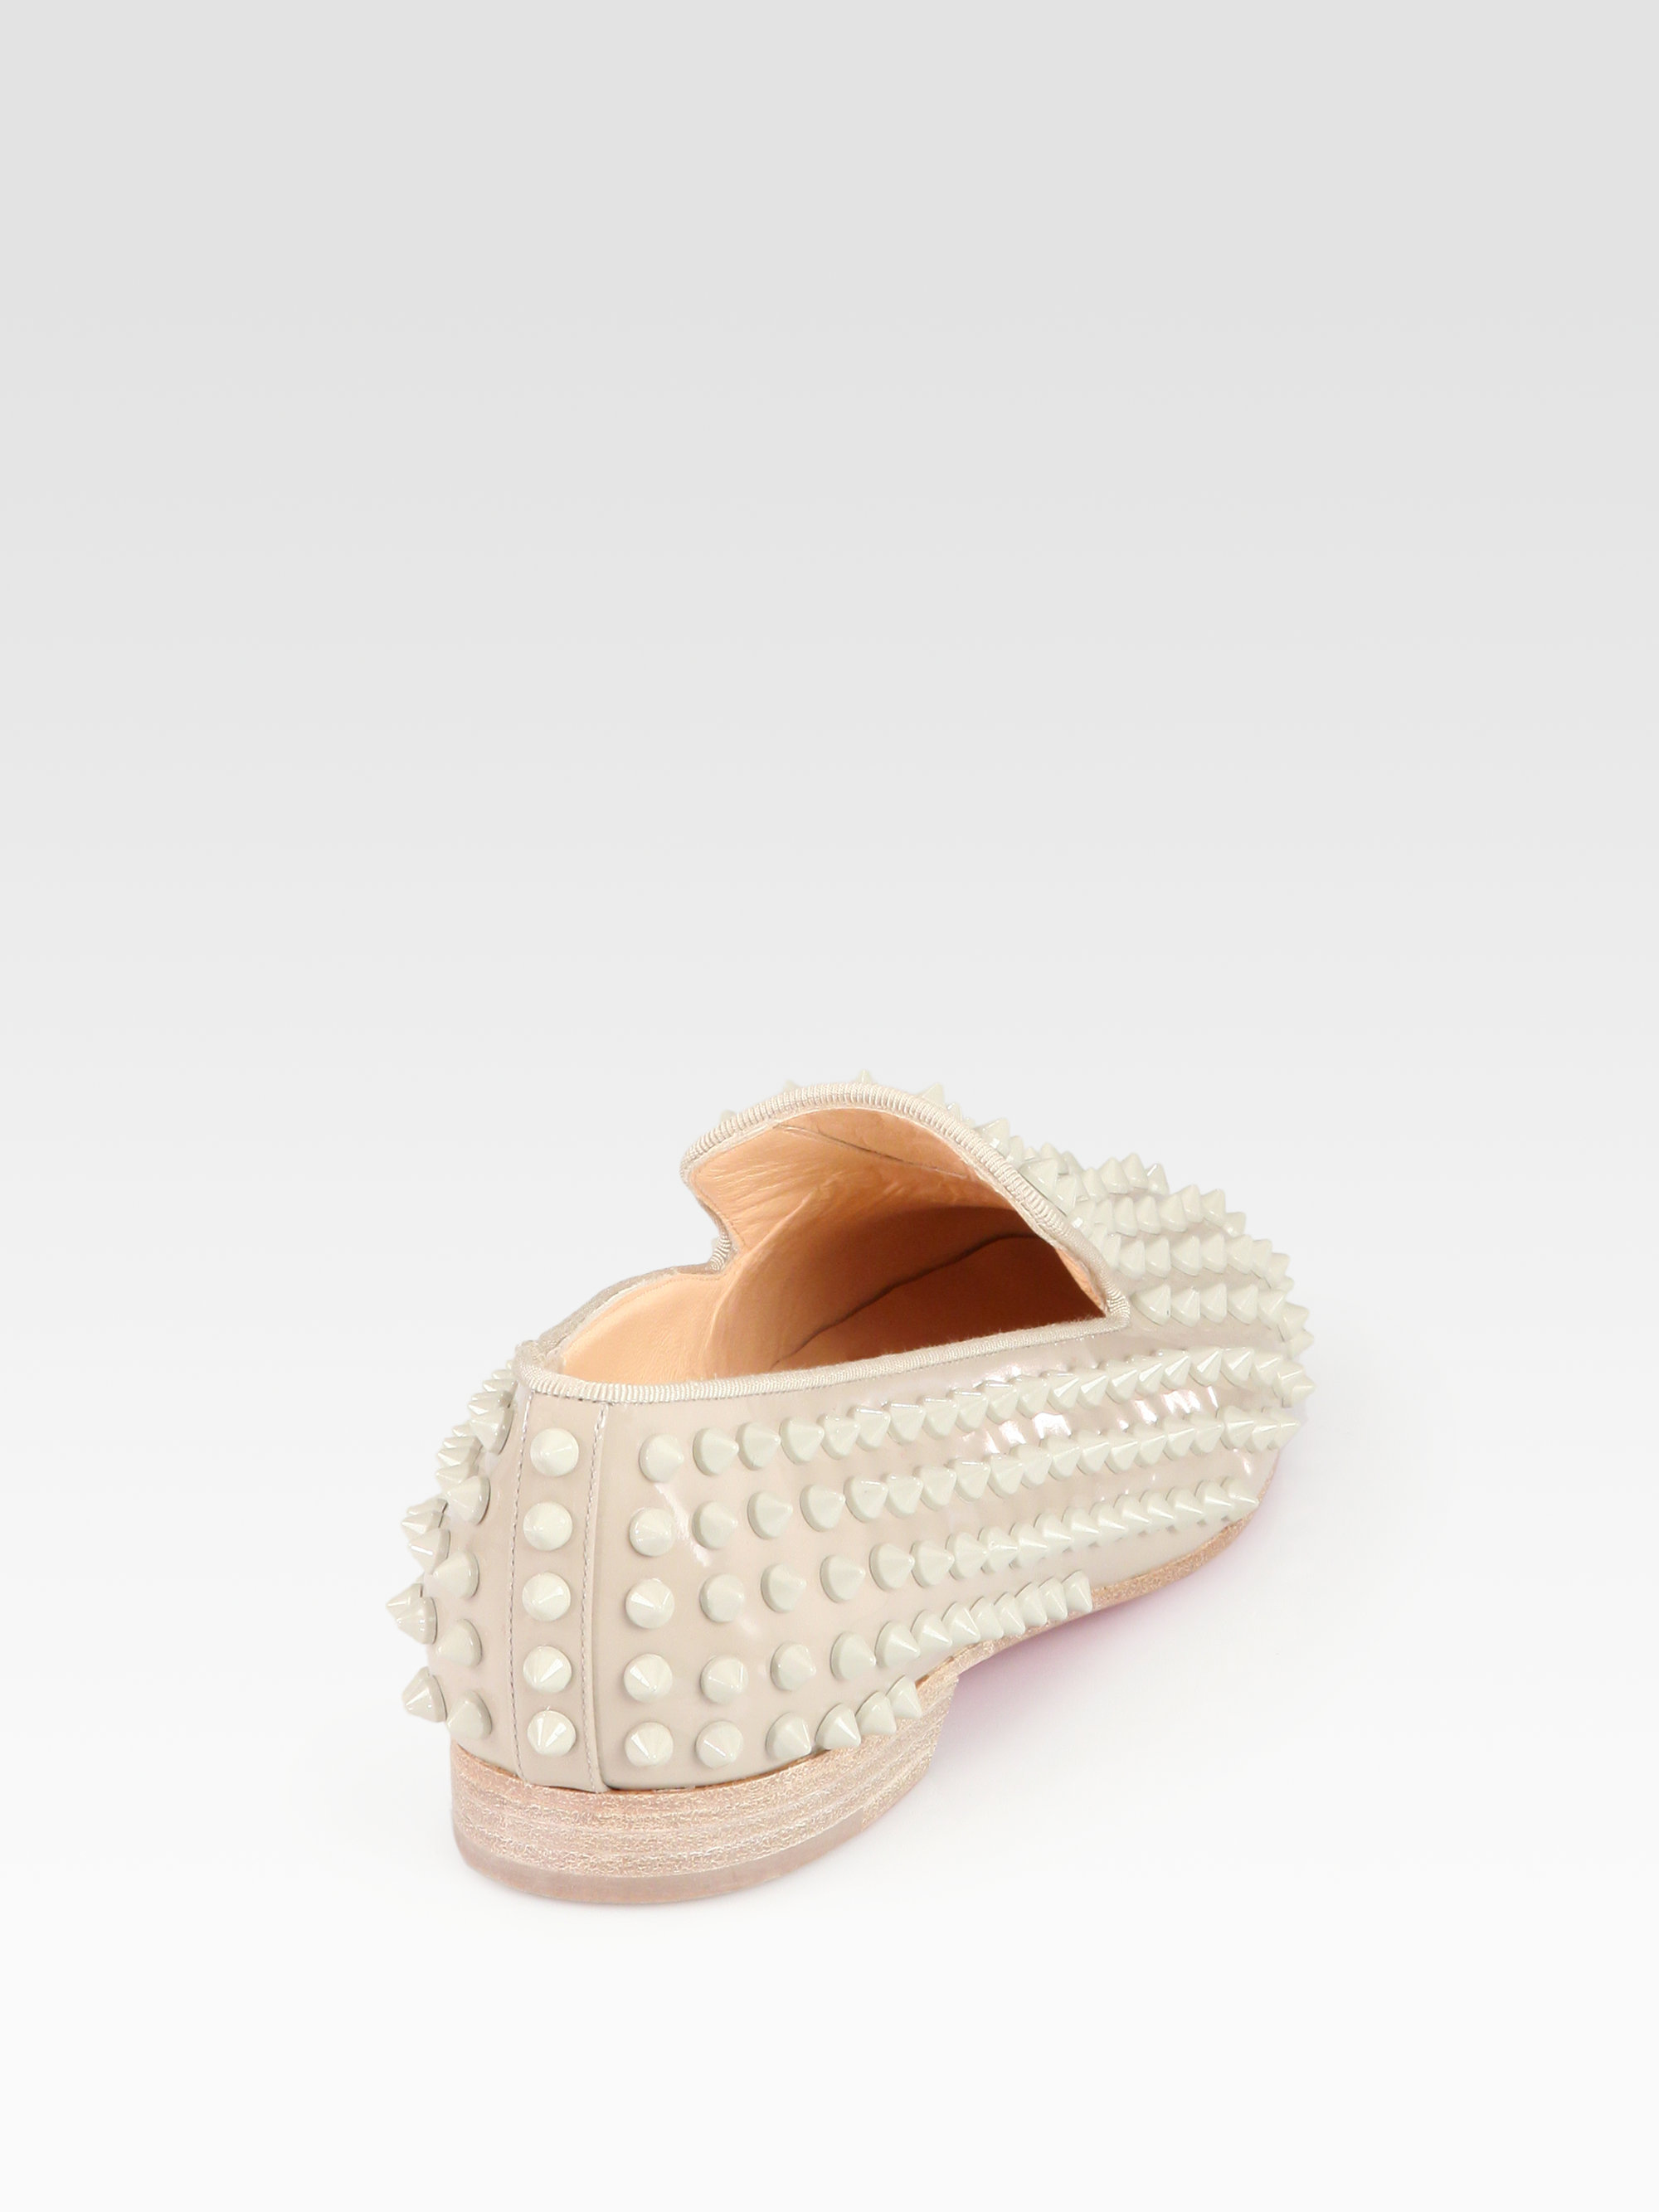 christian louboutin mens spiked loafers - christian louboutin slide sandals Beige leather | cosmetics ...